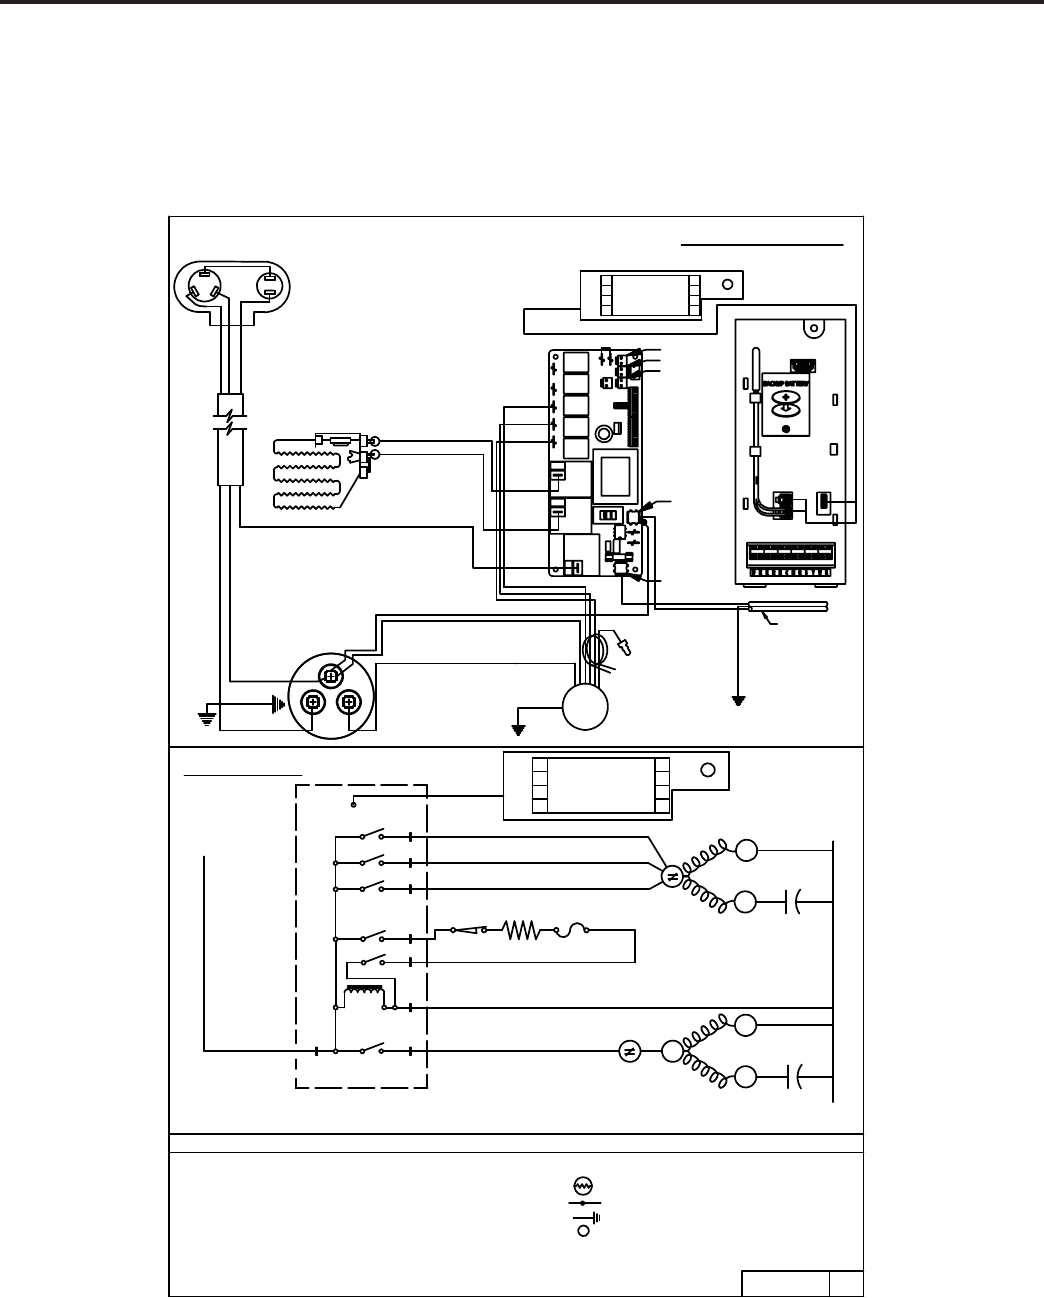 Friedrich R 410a Cool With Electric Heat Models Es12m33a Es15m33a Wiring Diagrams Em18m34a Em24m34a